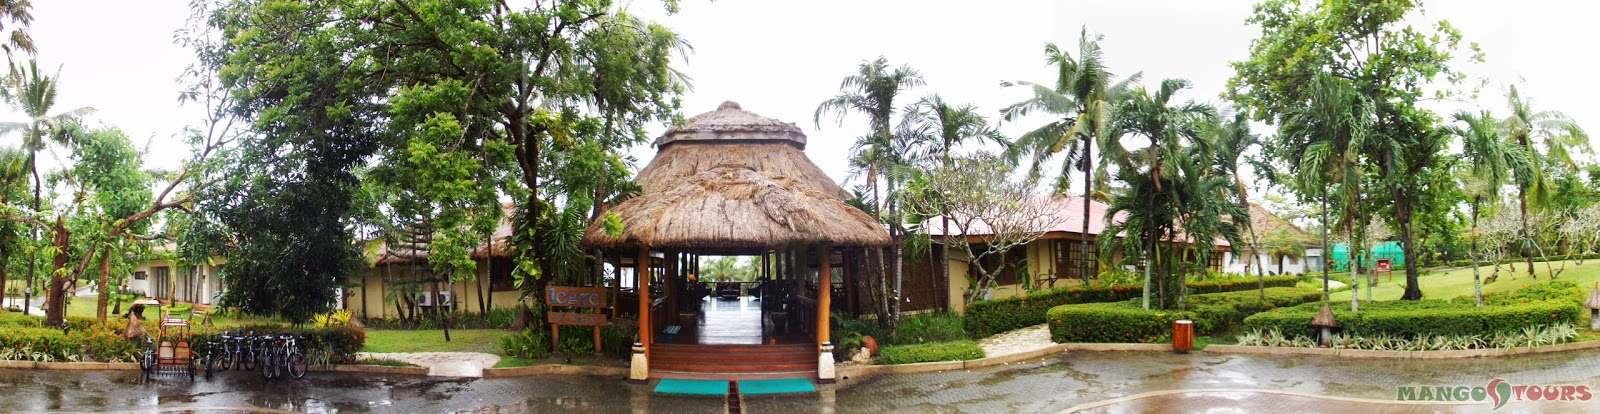 Mango Tours Philippines Alegre Beach Resort & Spa